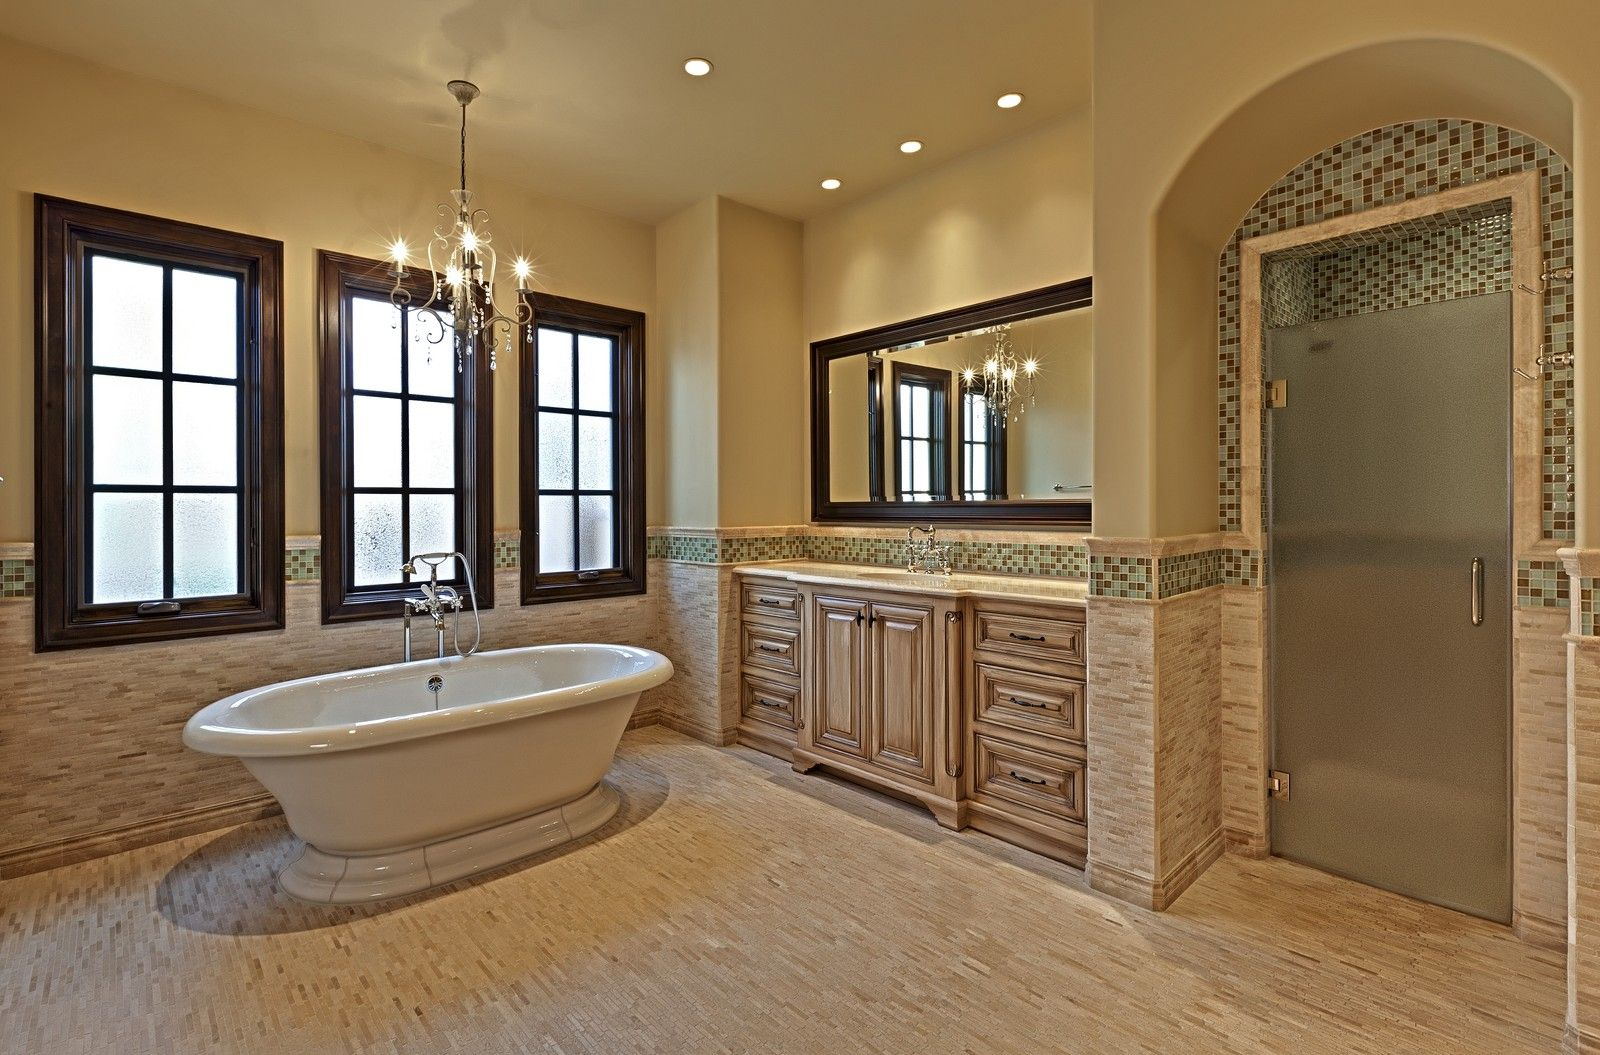 Bathroom Vanities For Phoenix Az Homes Mediterranean Bathroom